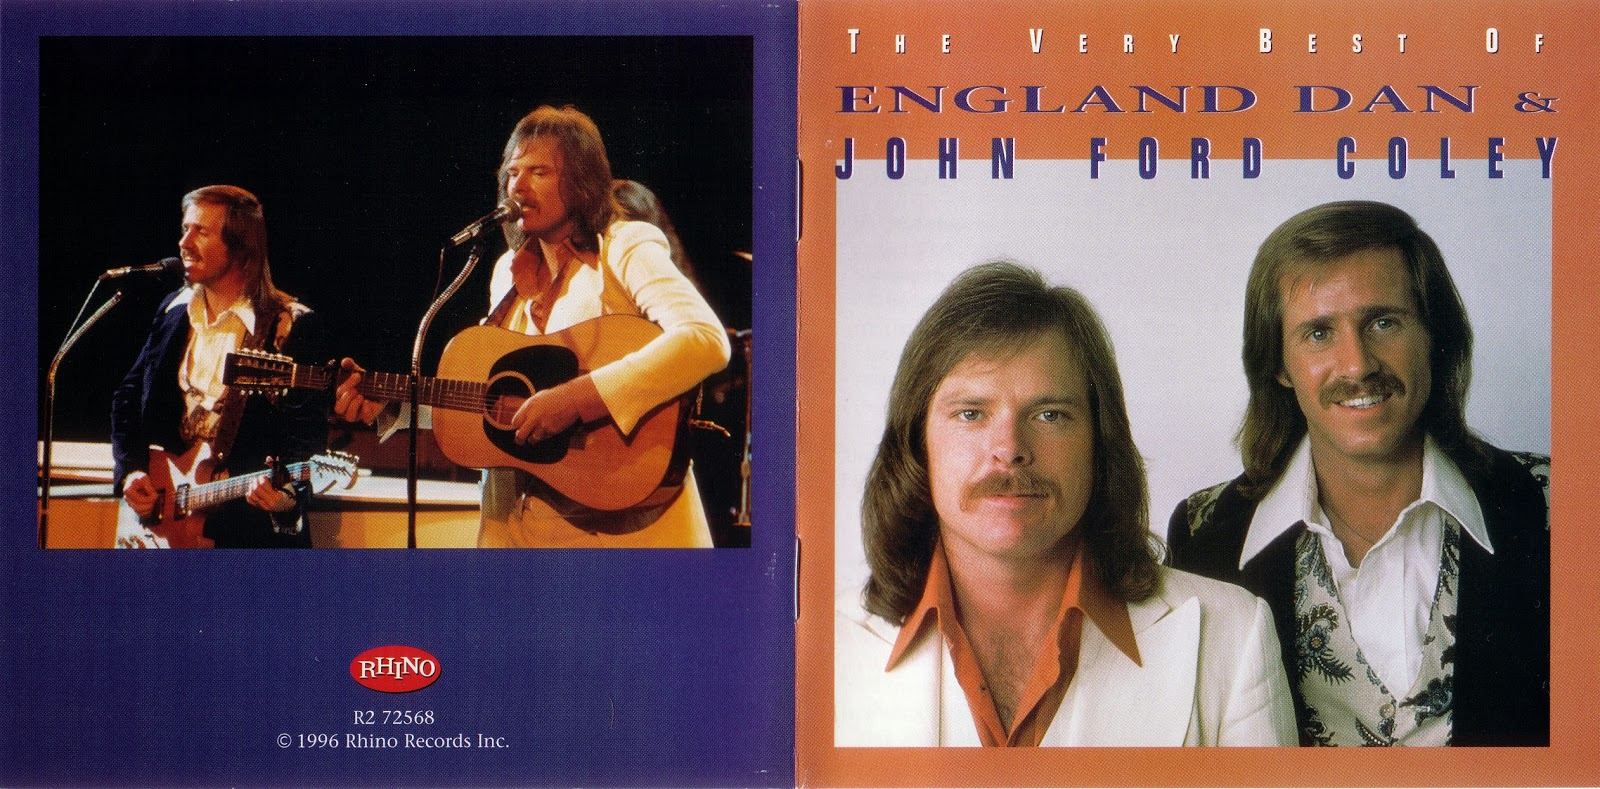 England dan john ford coley the very best of